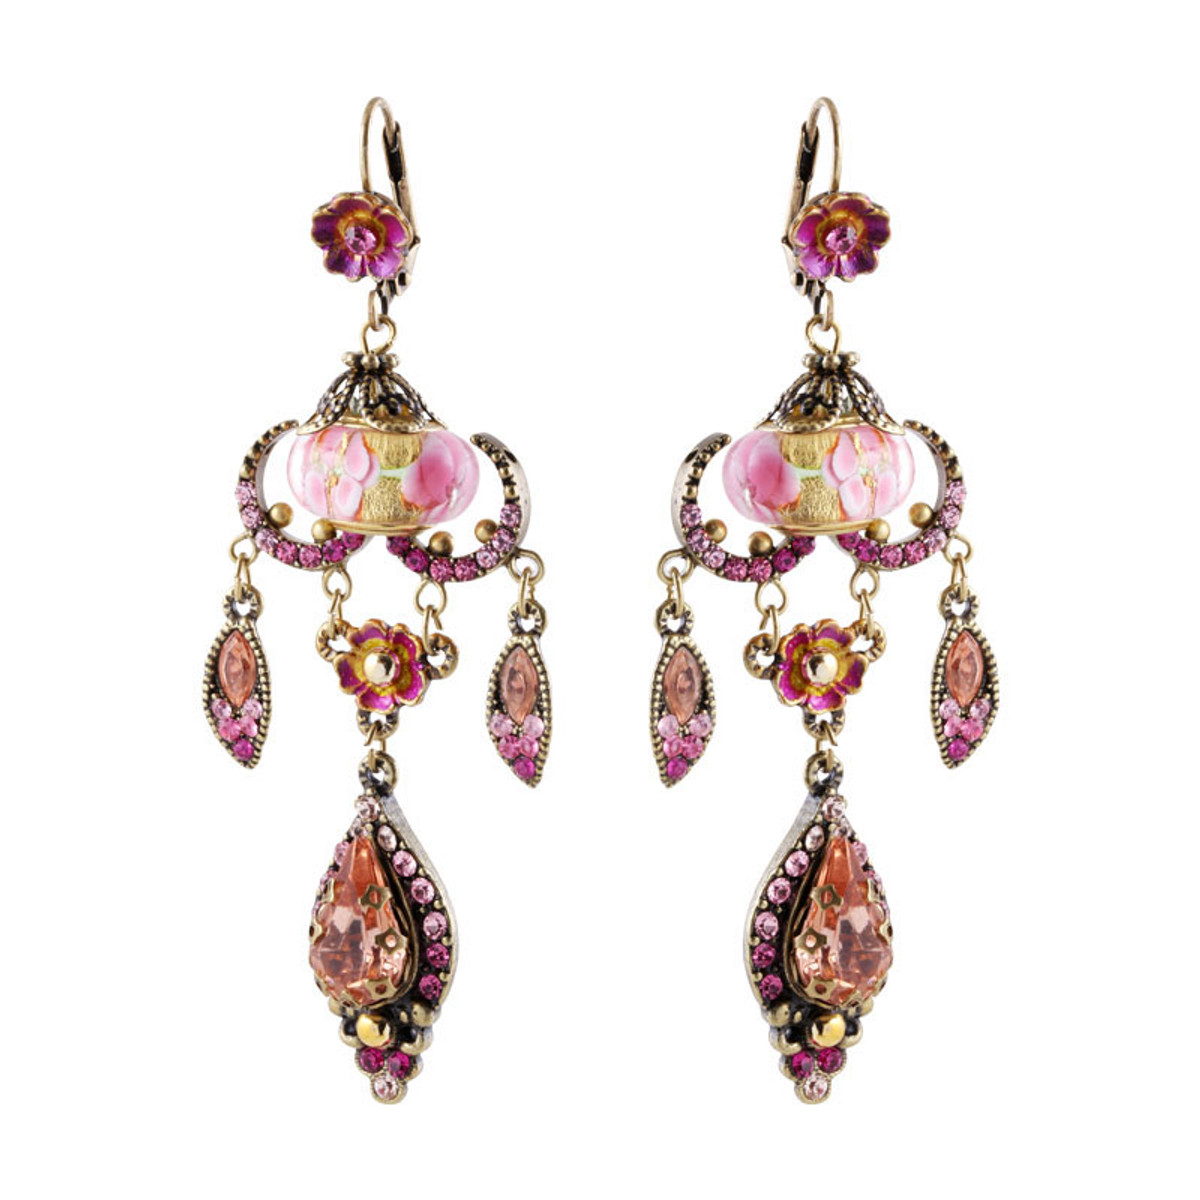 Michal Negrin Raindrop Earrings - Multi Color